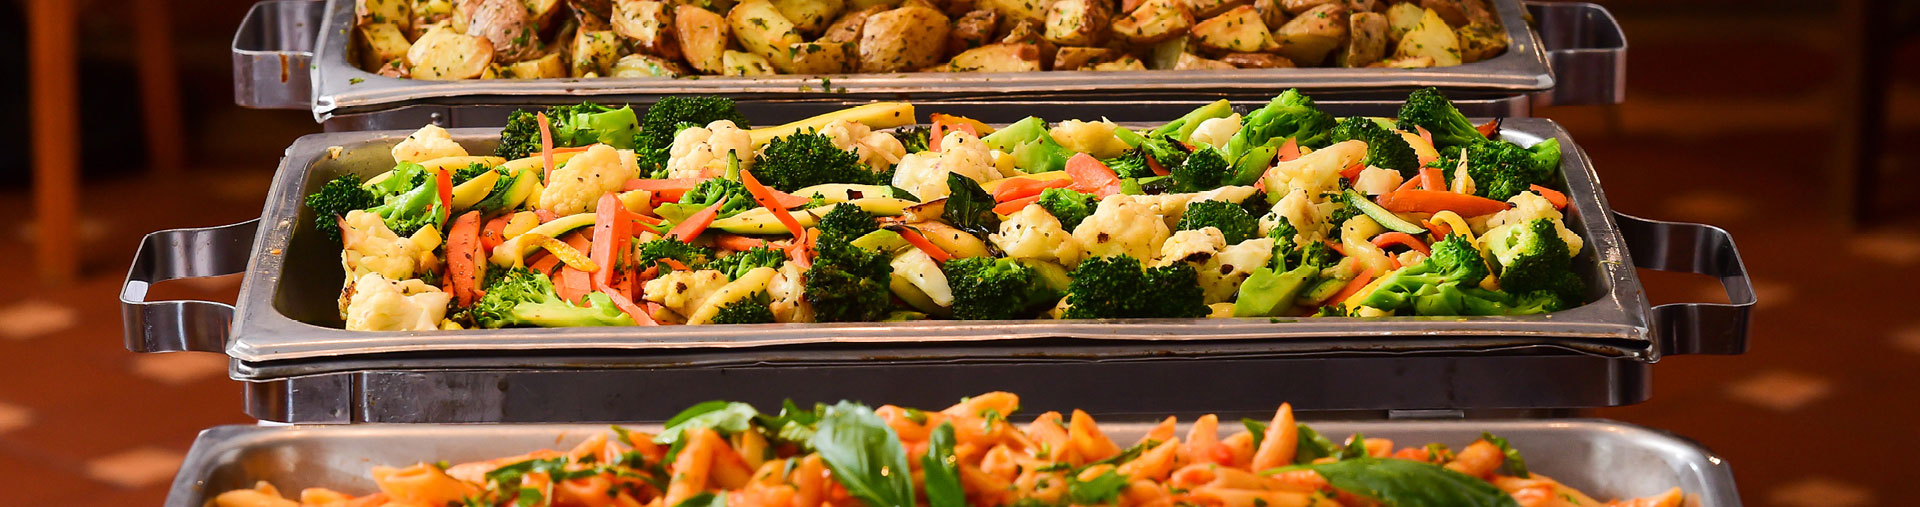 Private event buffet vegetable and pasta served at Cucina & Co. Rockefeller Center in midtown NYC